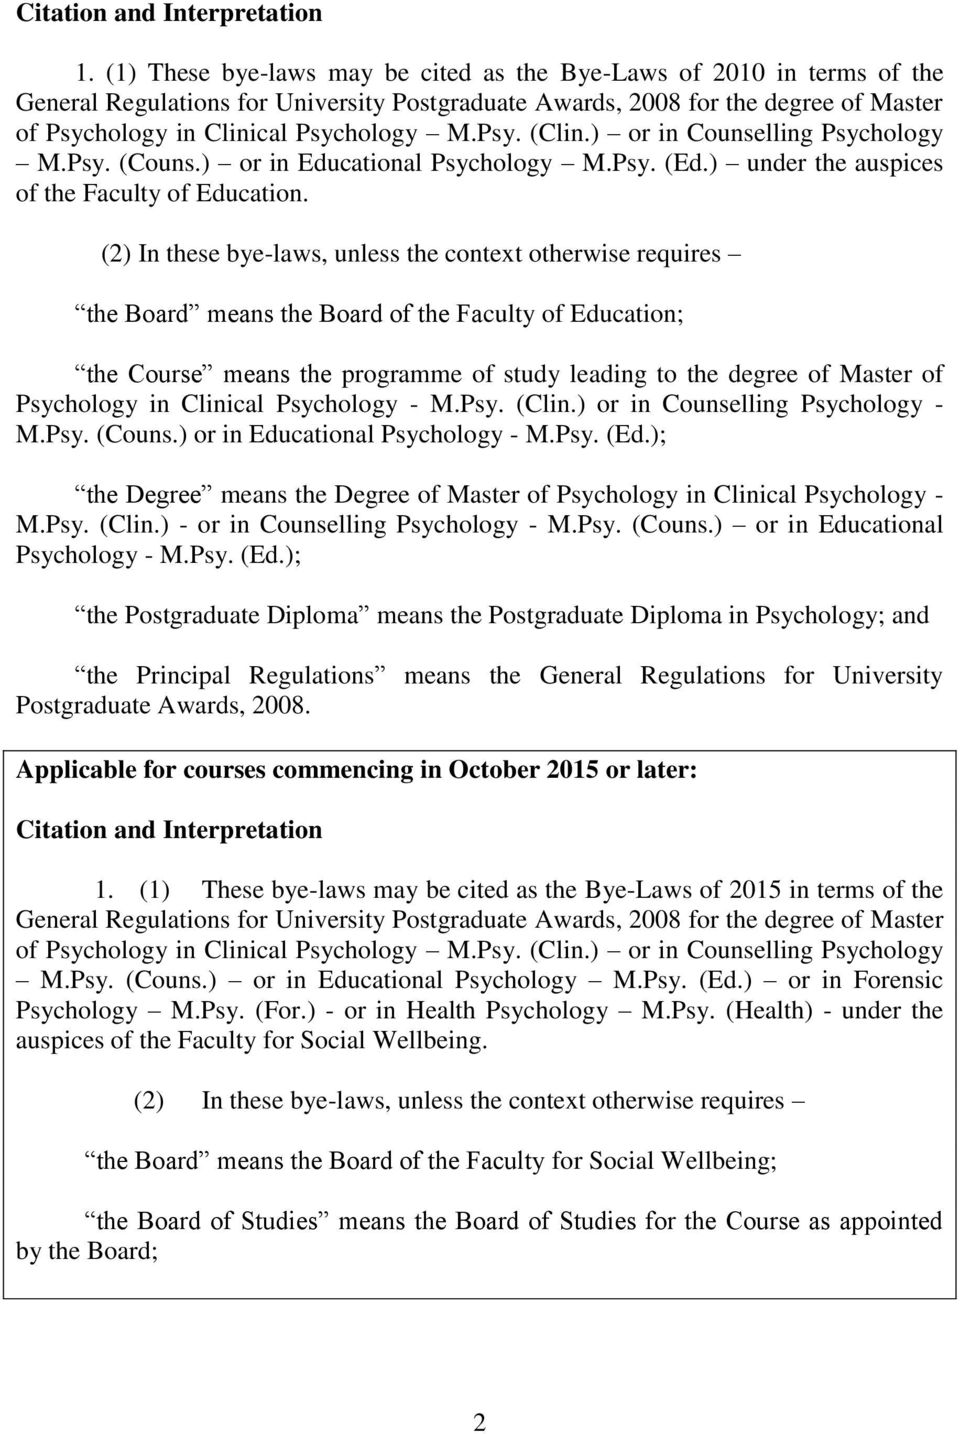 Psy. (Clin.) or in Counselling Psychology M.Psy. (Couns.) or in Educational Psychology M.Psy. (Ed.) under the auspices of the Faculty of Education.